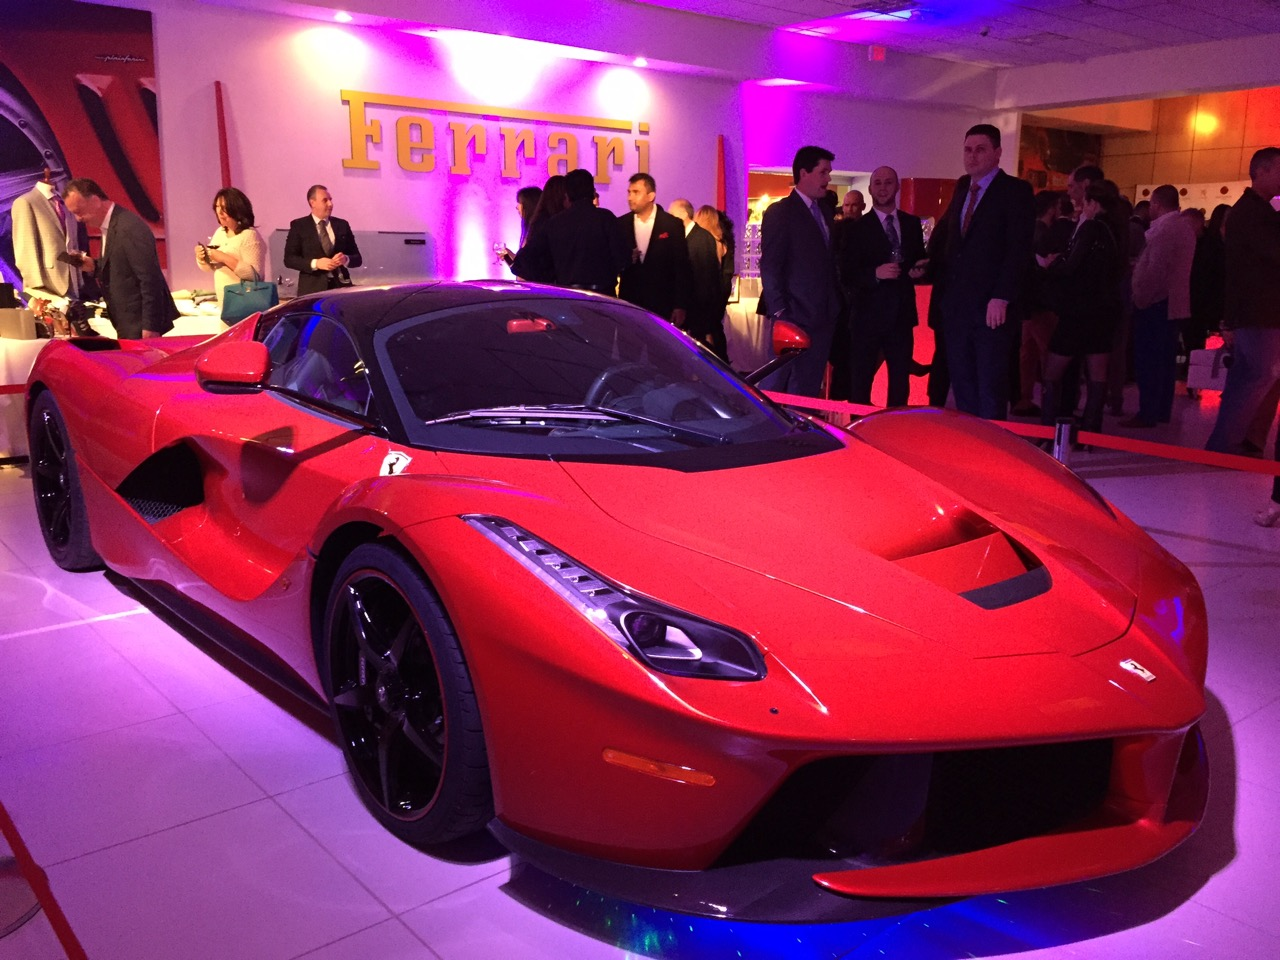 VIP Fashion Show Fundraiser Lighting Ferrari Of Central New Jersey - Car show nj